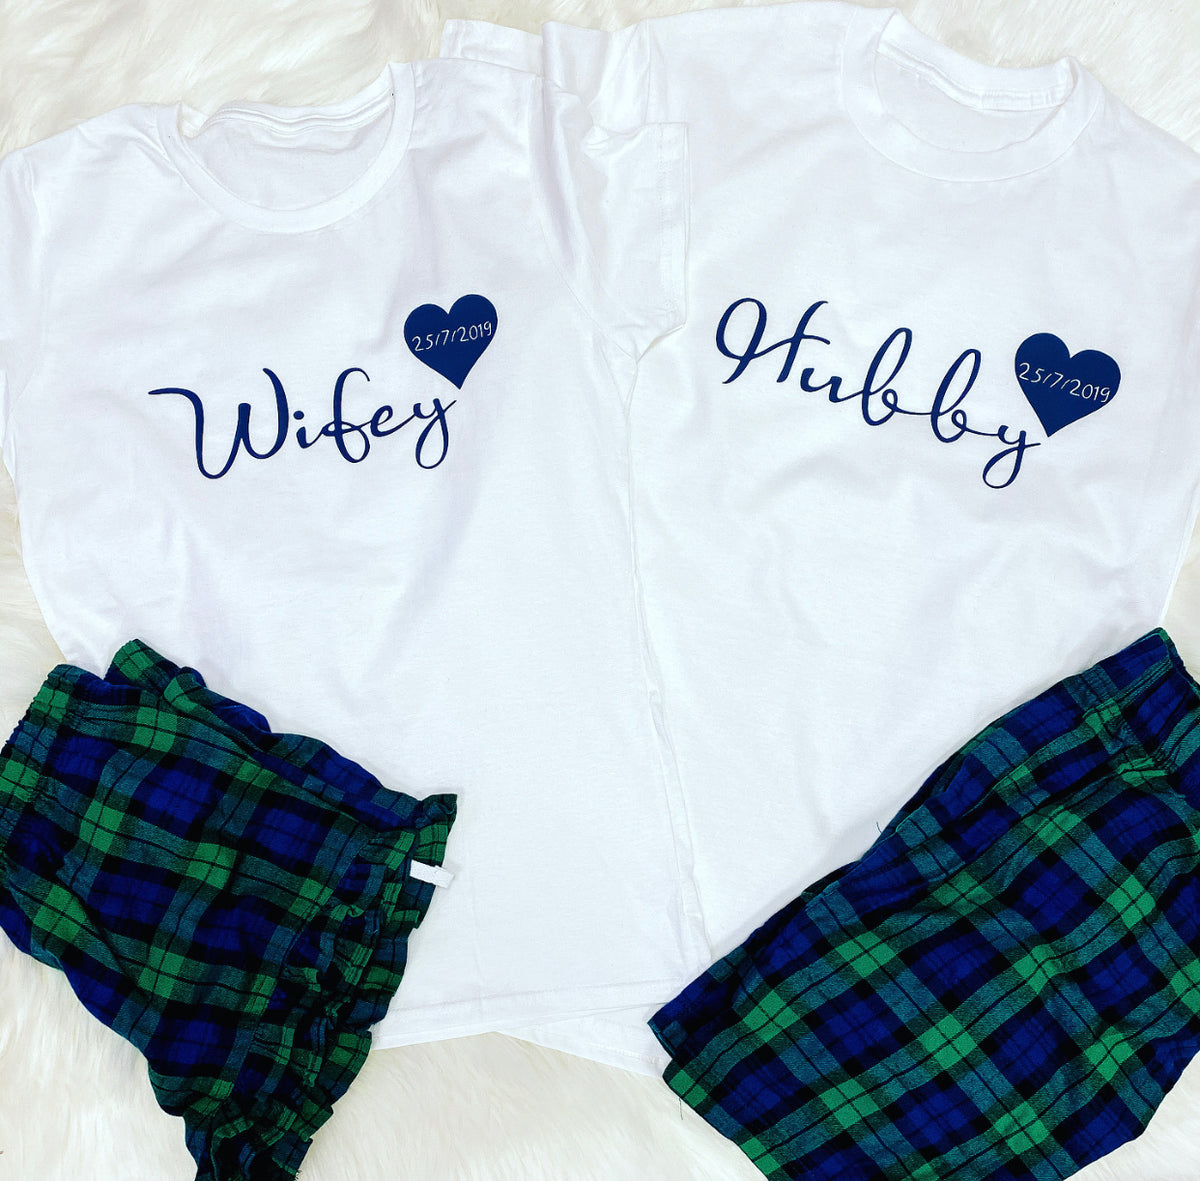 Tartan style Hubby and Wifey matching pyjamas The Bespoke Wedding Gift Company